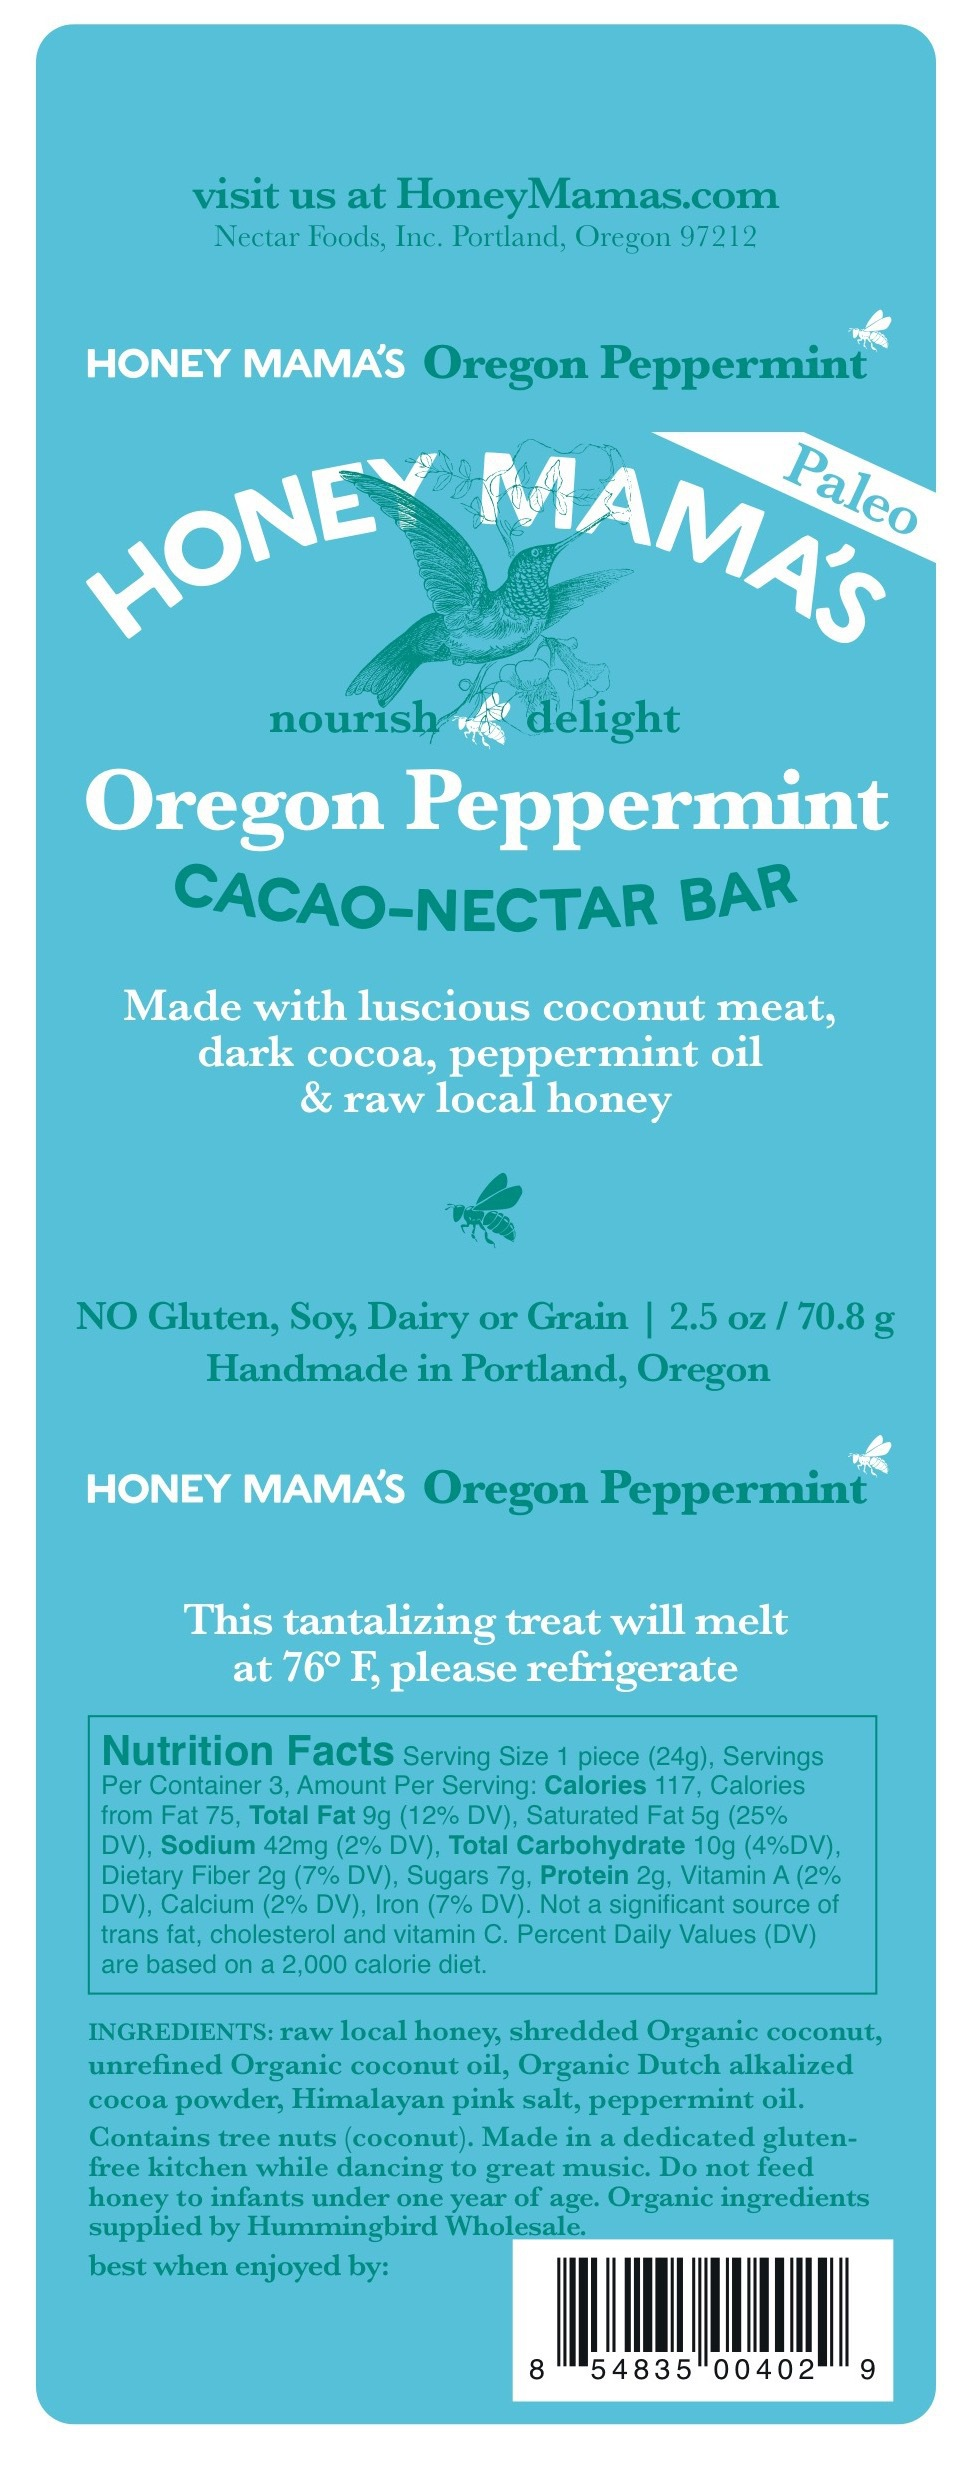 Cacao-nectar Bar | Snacks, cookies & candy, -Candy, --Candy - candy ...